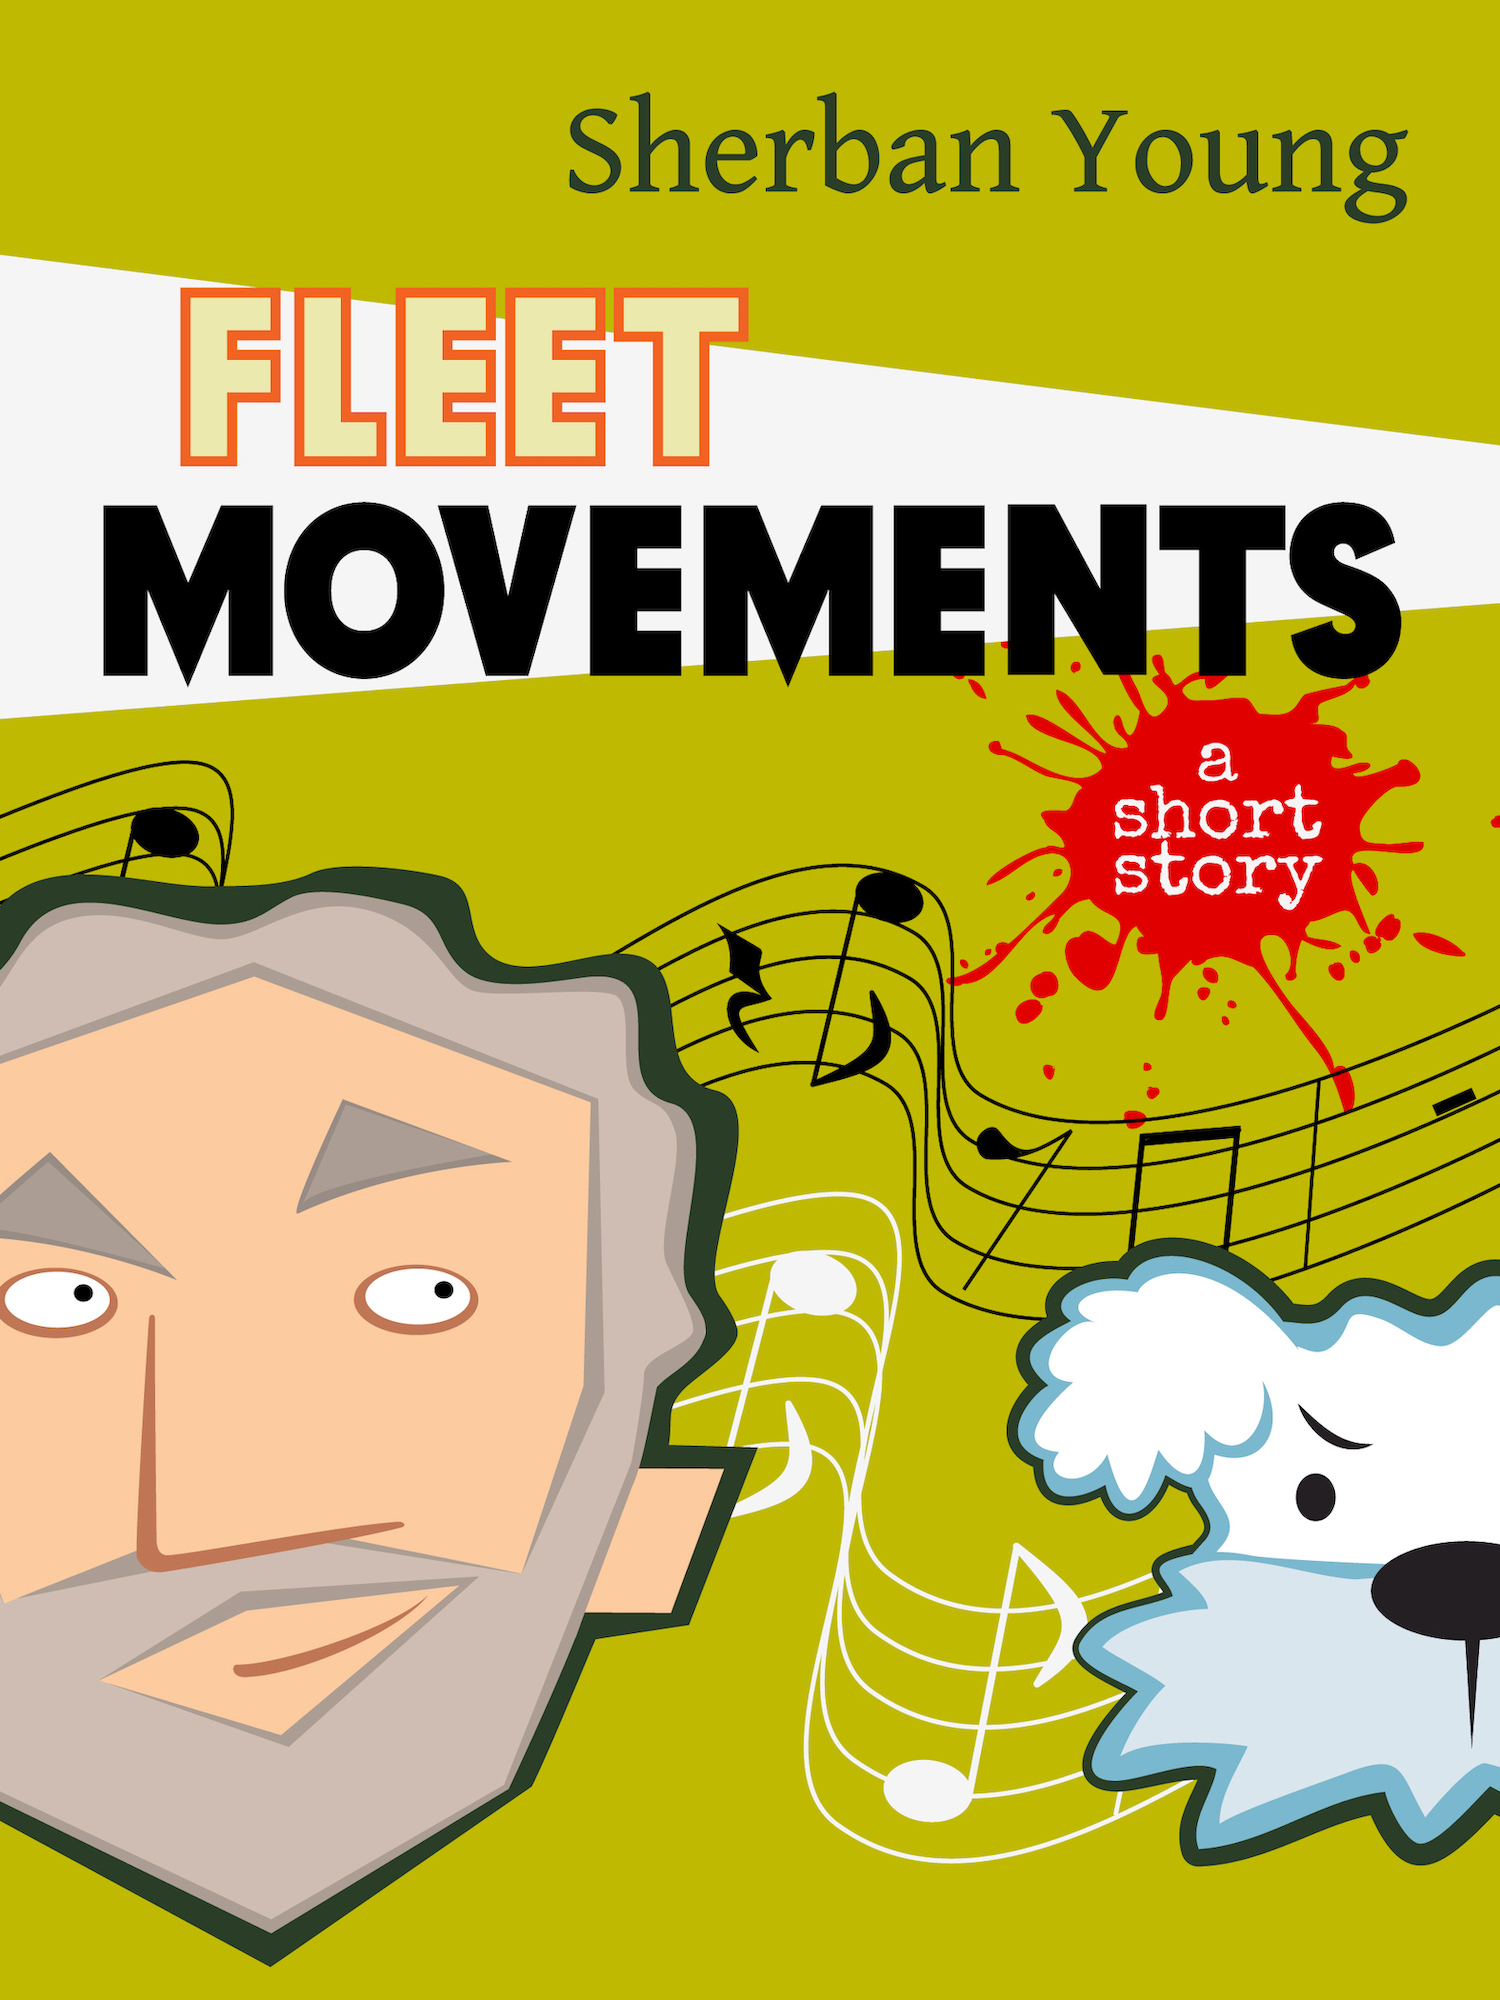 Cover-Movements.jpg